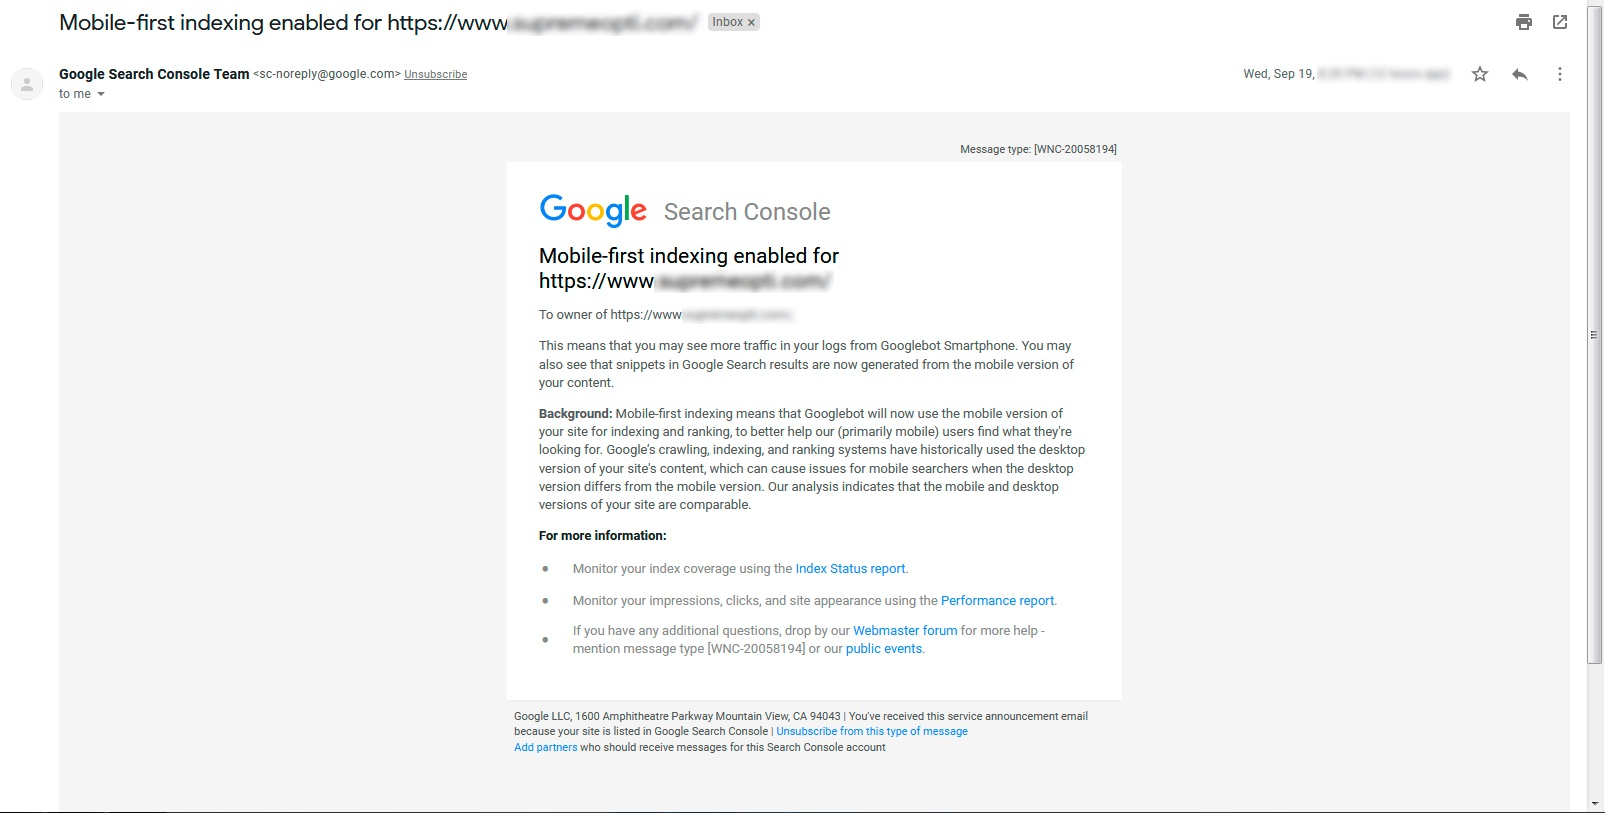 Mobile first index notification